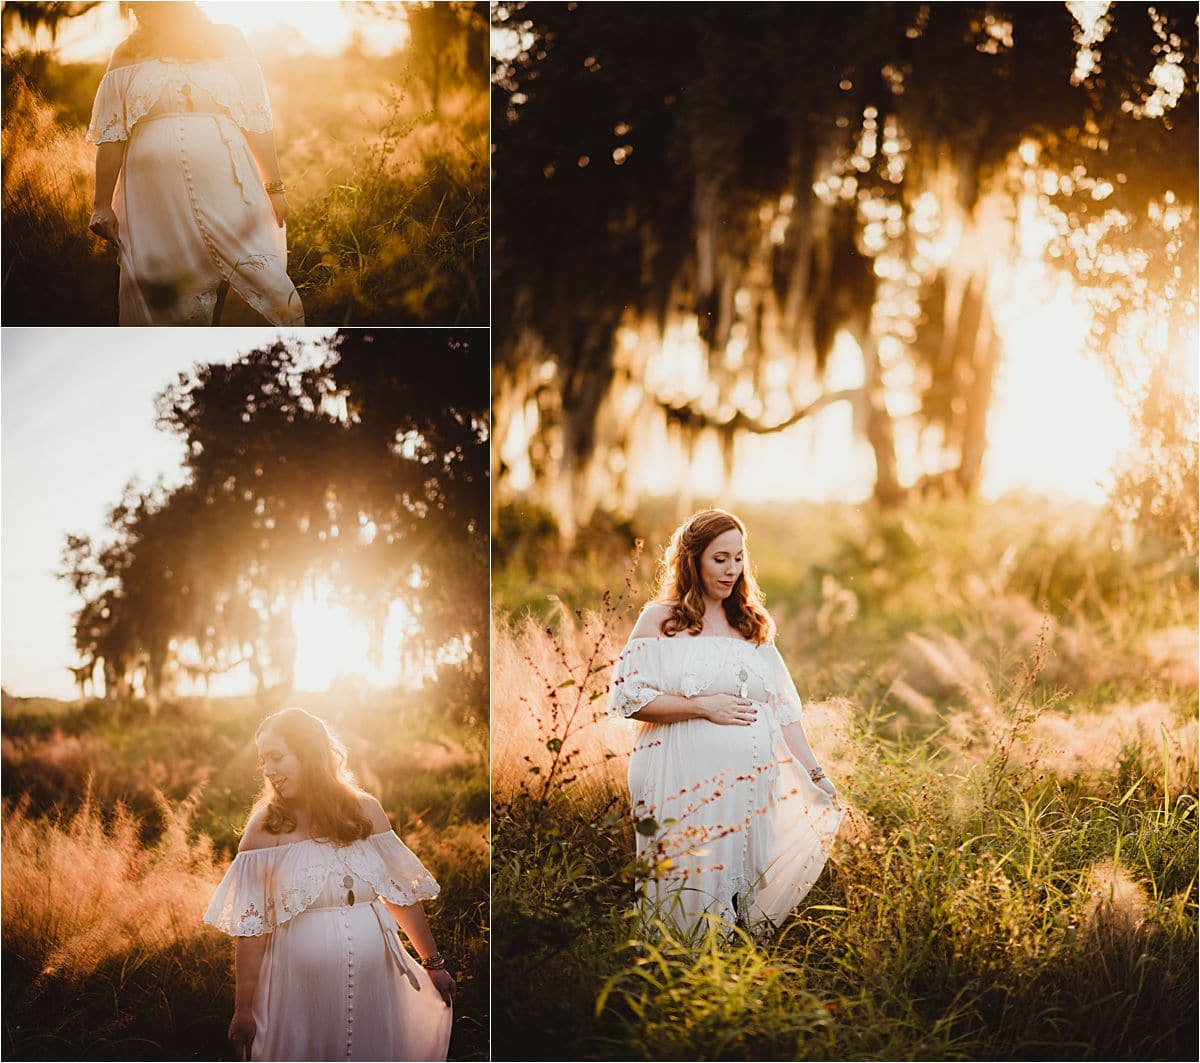 Sunset Maternity Session Woman in Field